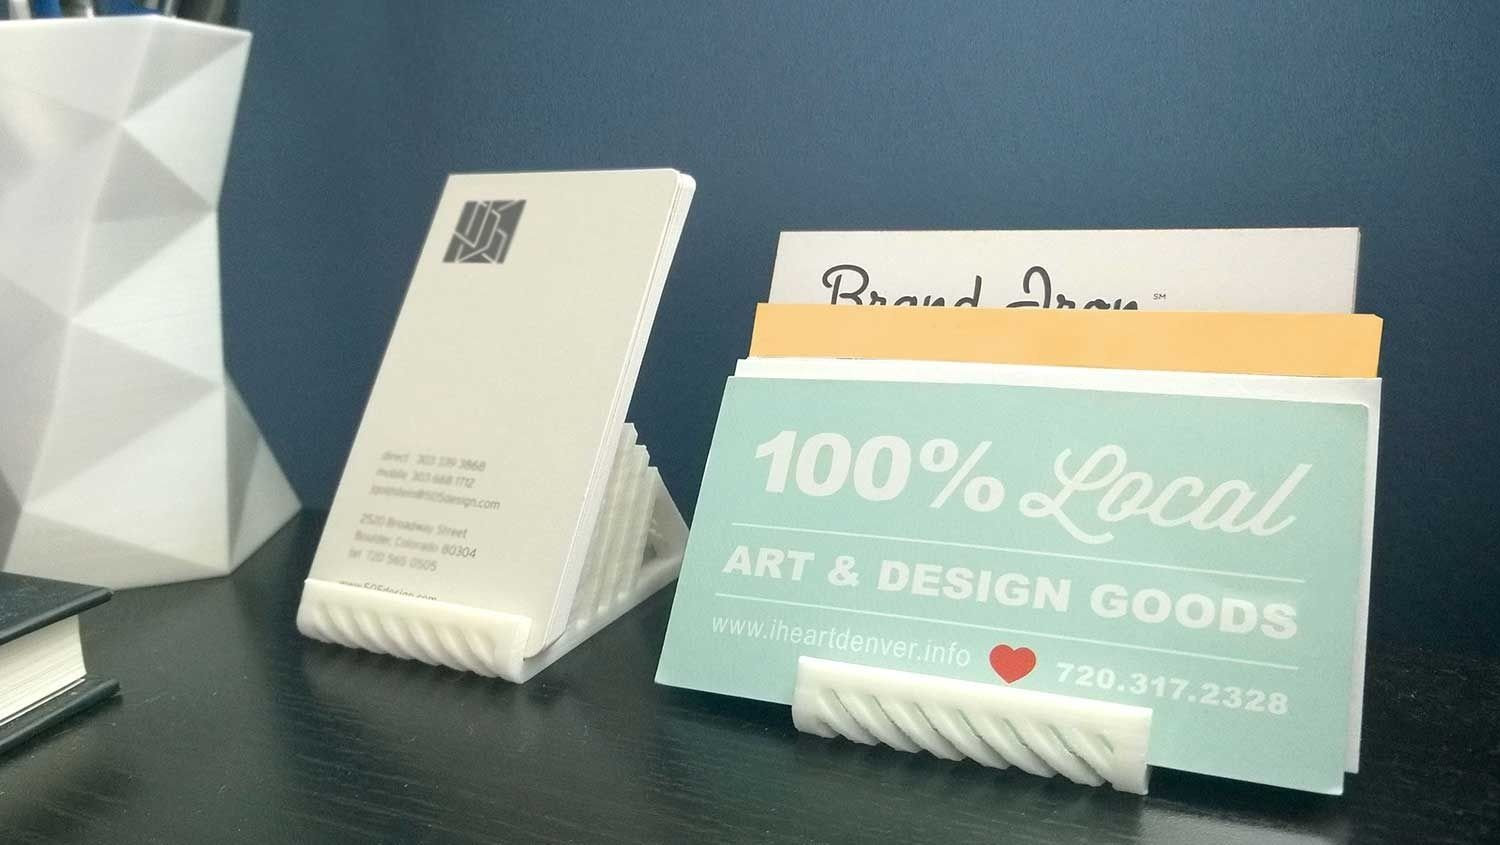 015c - Business Card Holder - Tiered - 3D print model 2